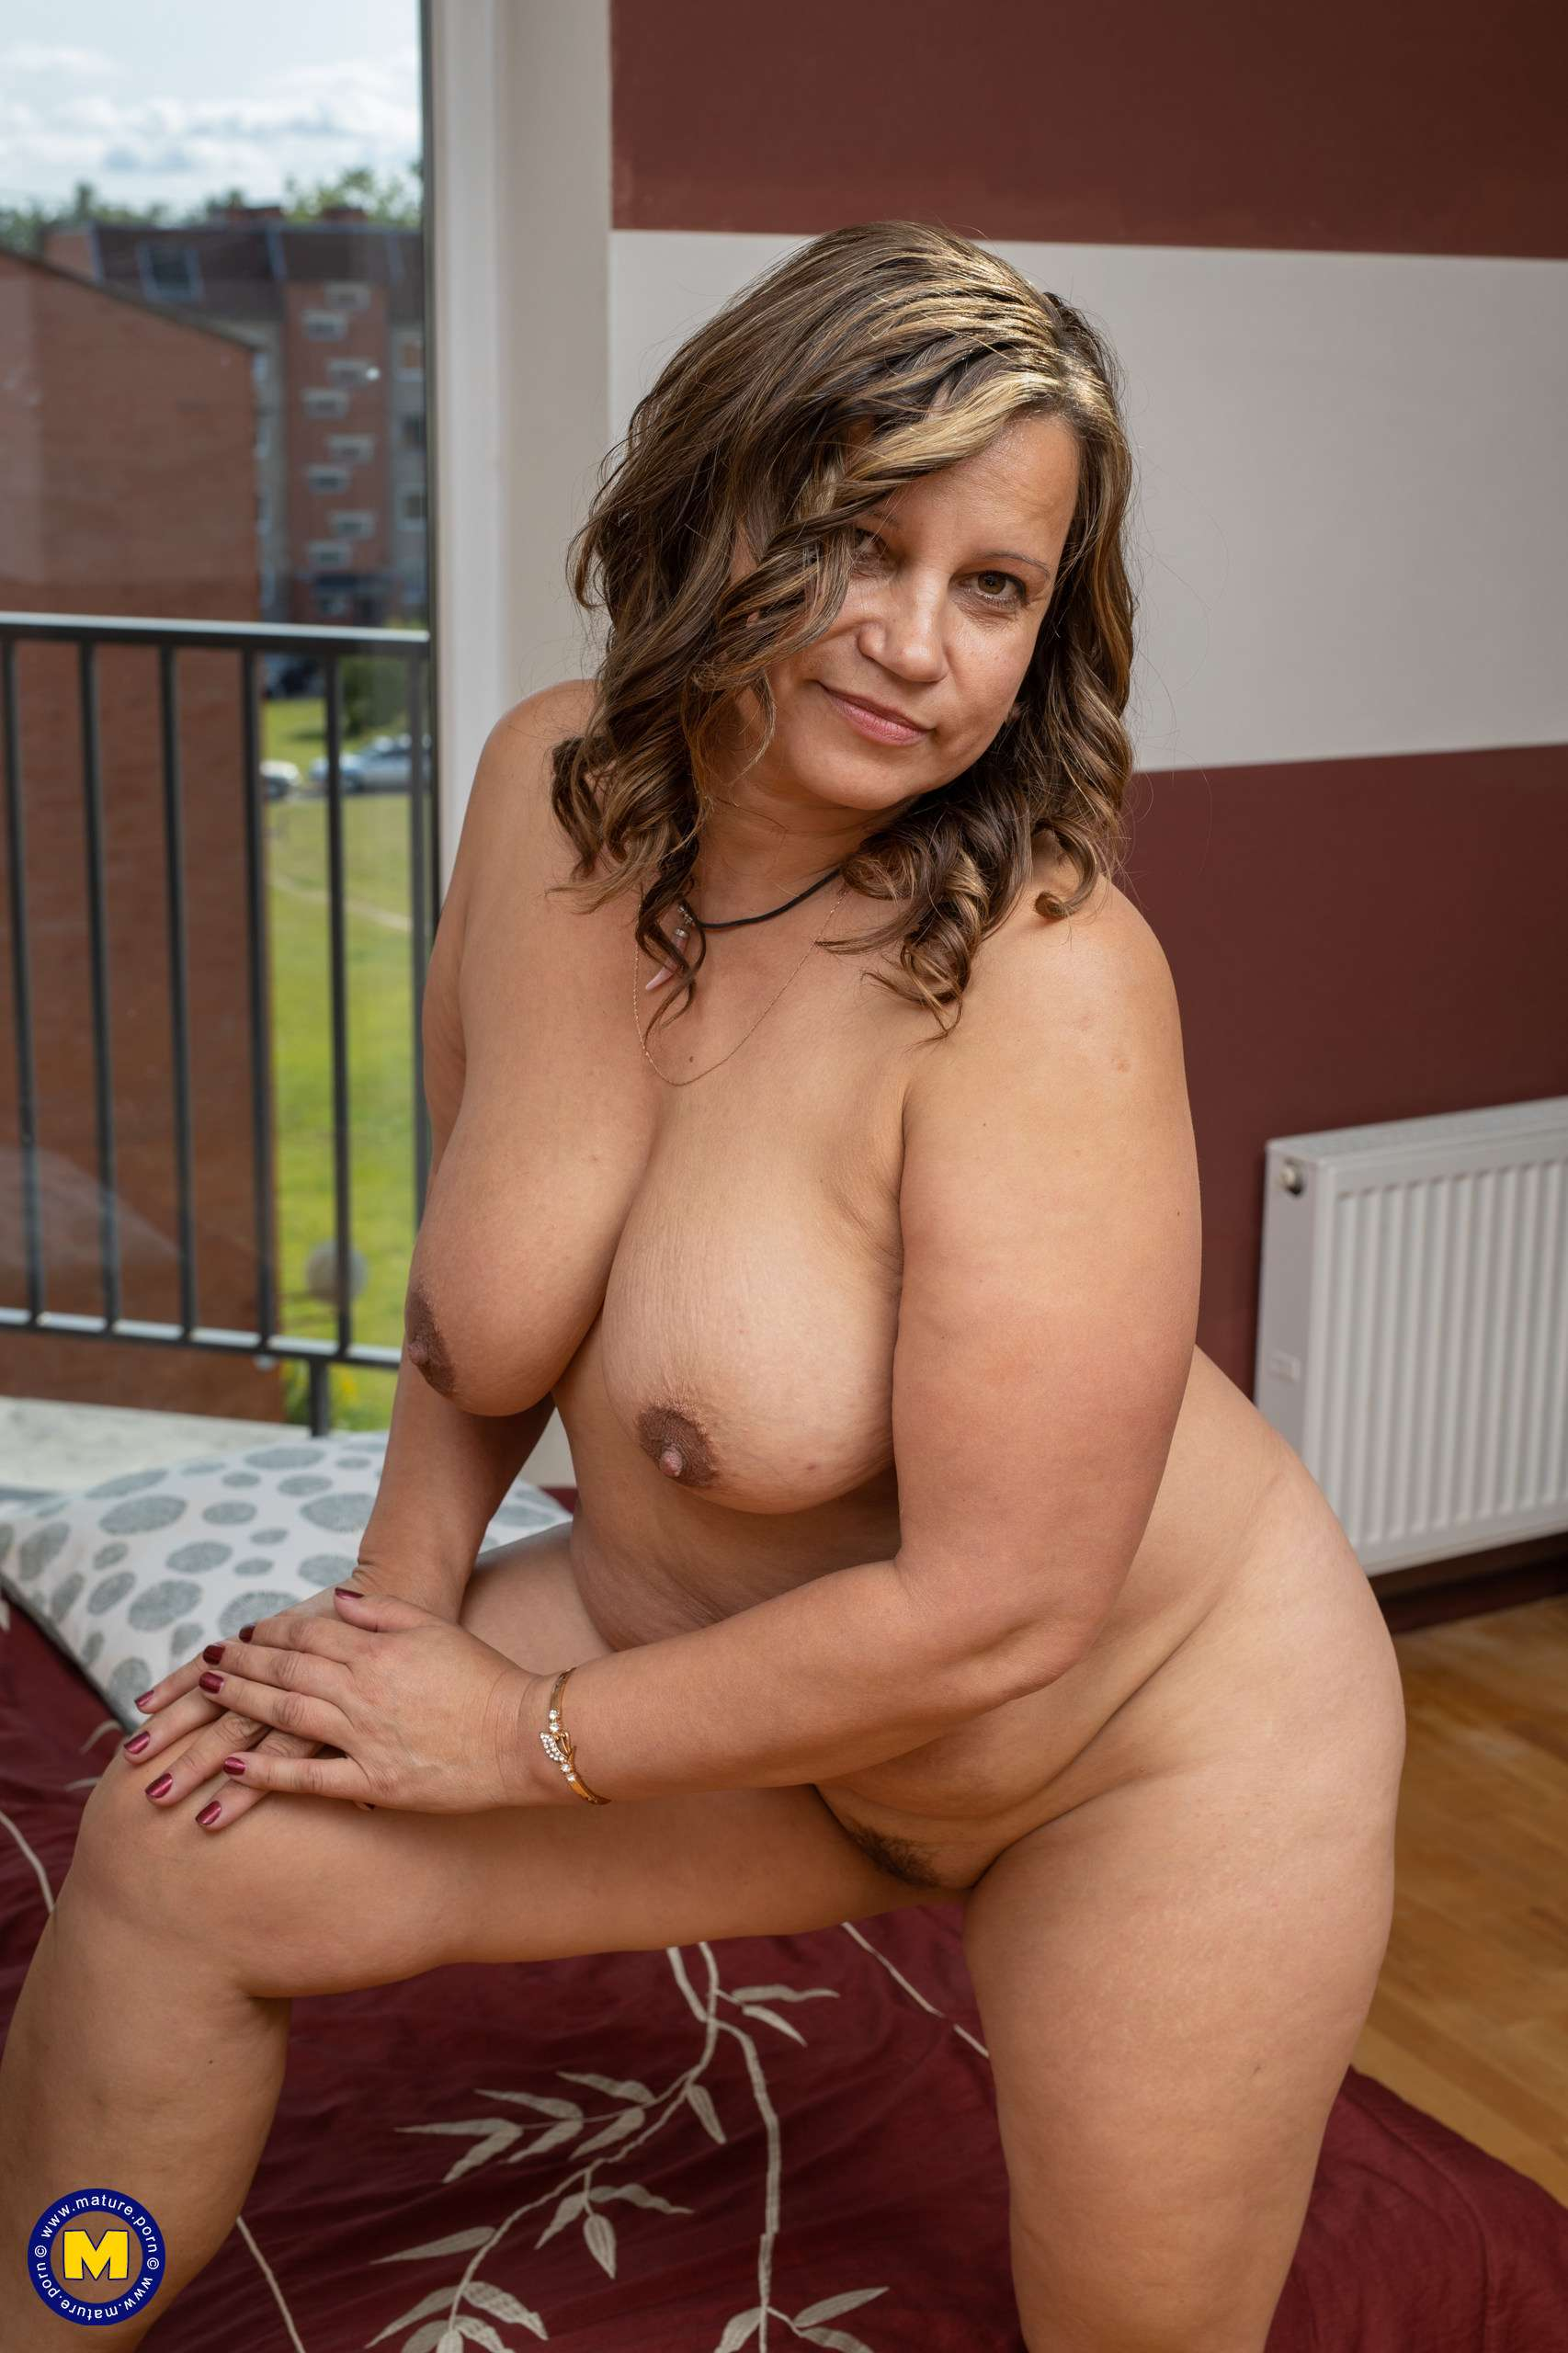 Naughty curvy mom loves to show you her dirty side